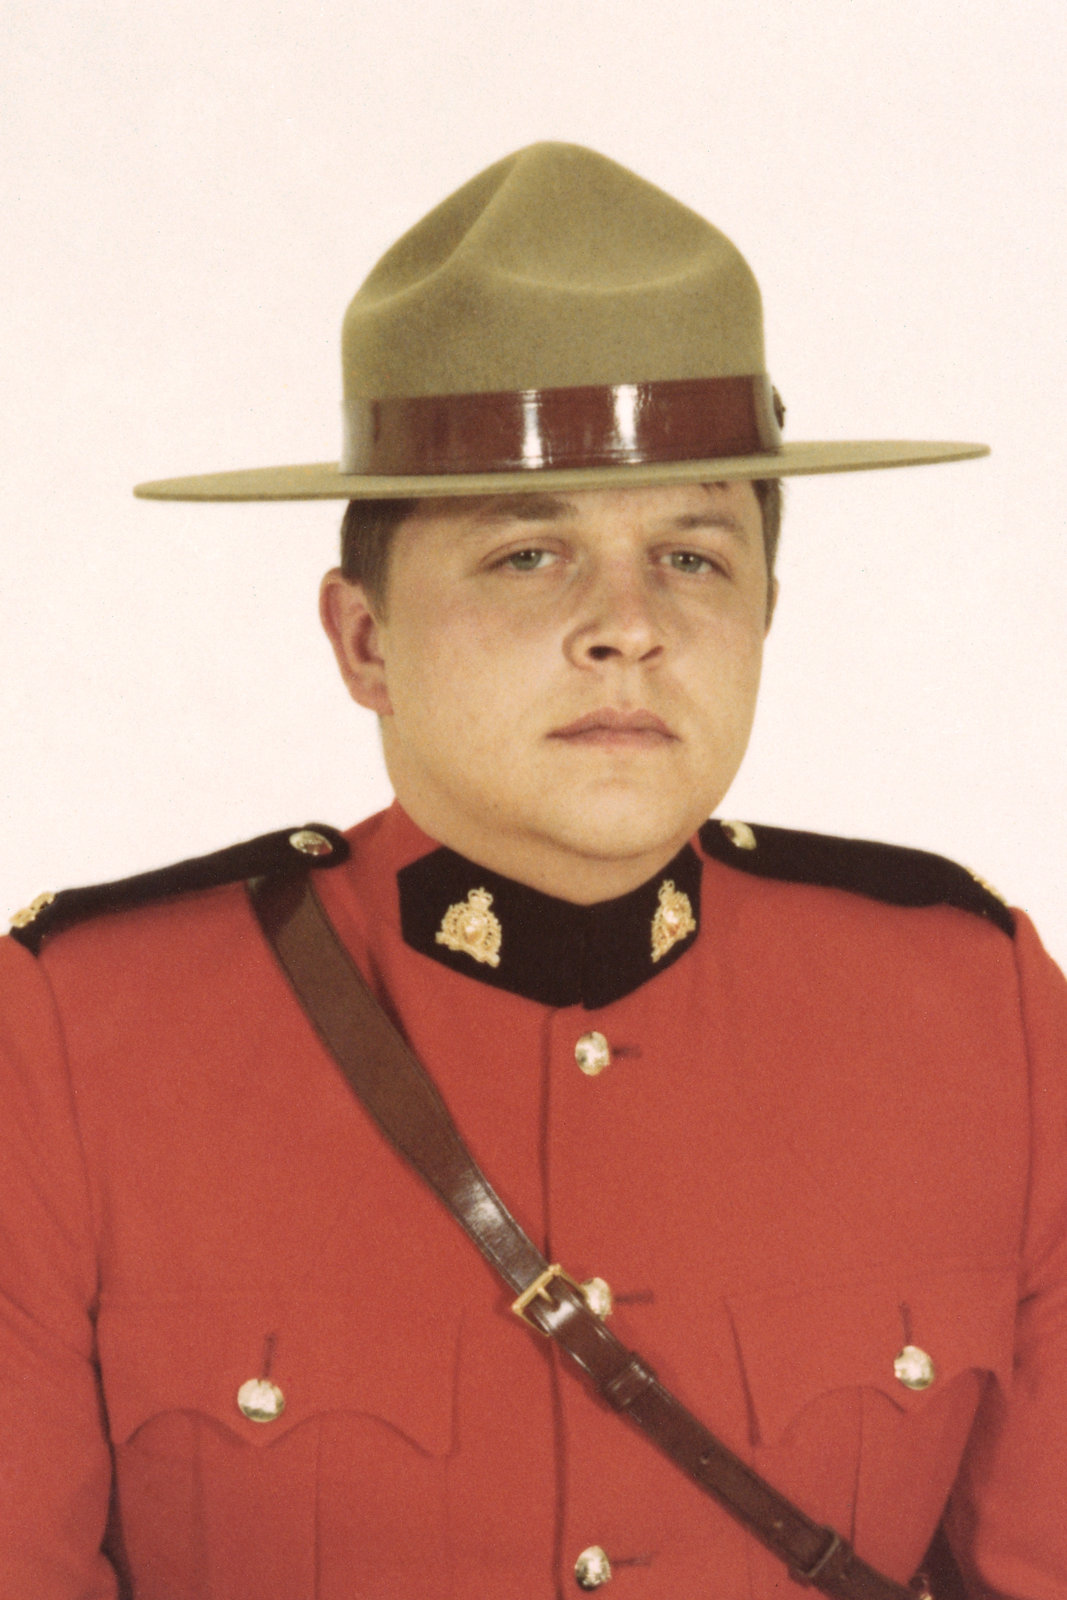 Constable James Franklin Thomas– © Her Majesty the Queen in Right of Canada as represented by the Royal Canadian Mounted Police